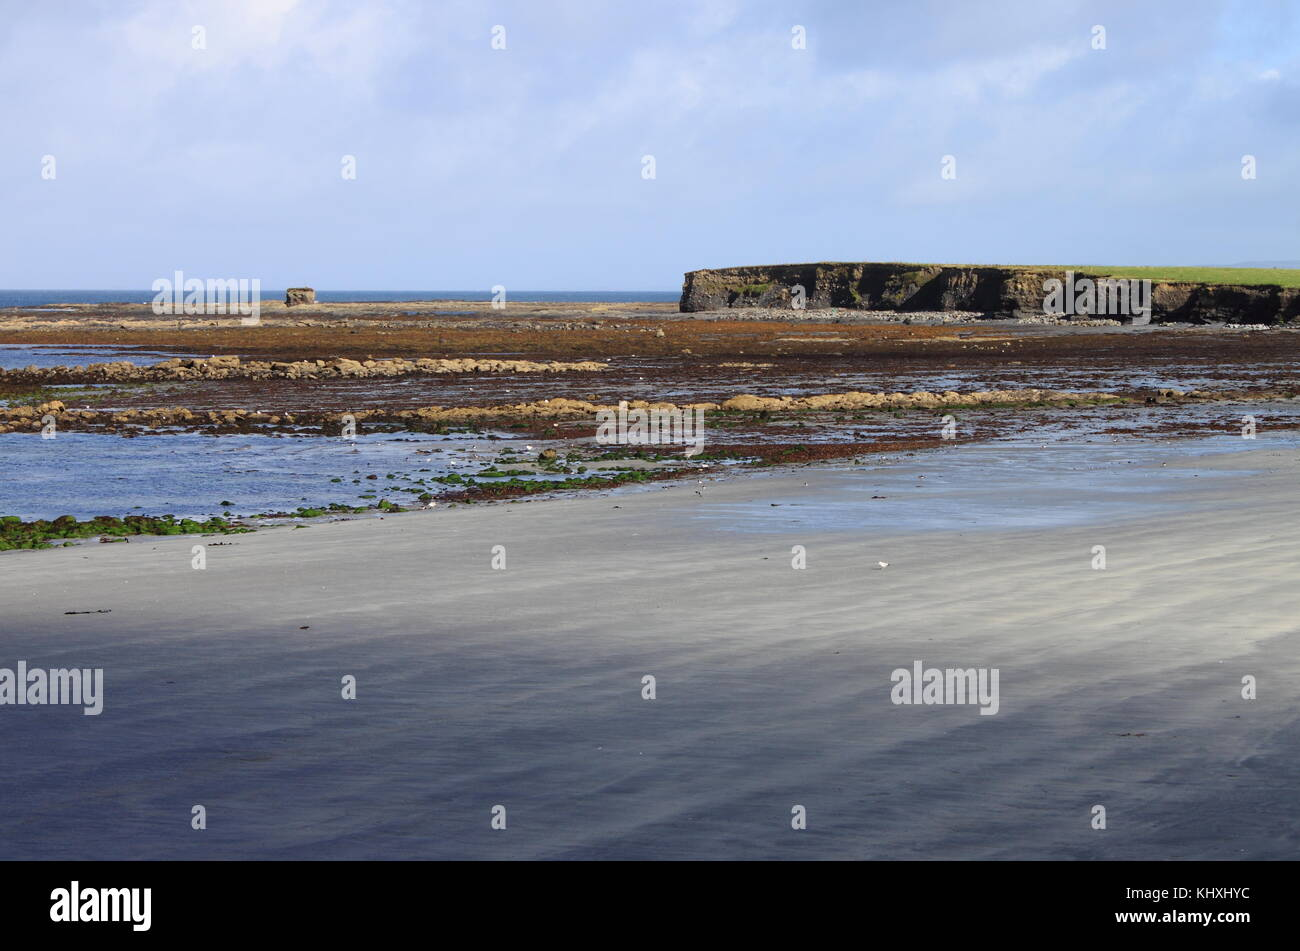 Low tide in County Clare, Ireland - Stock Image